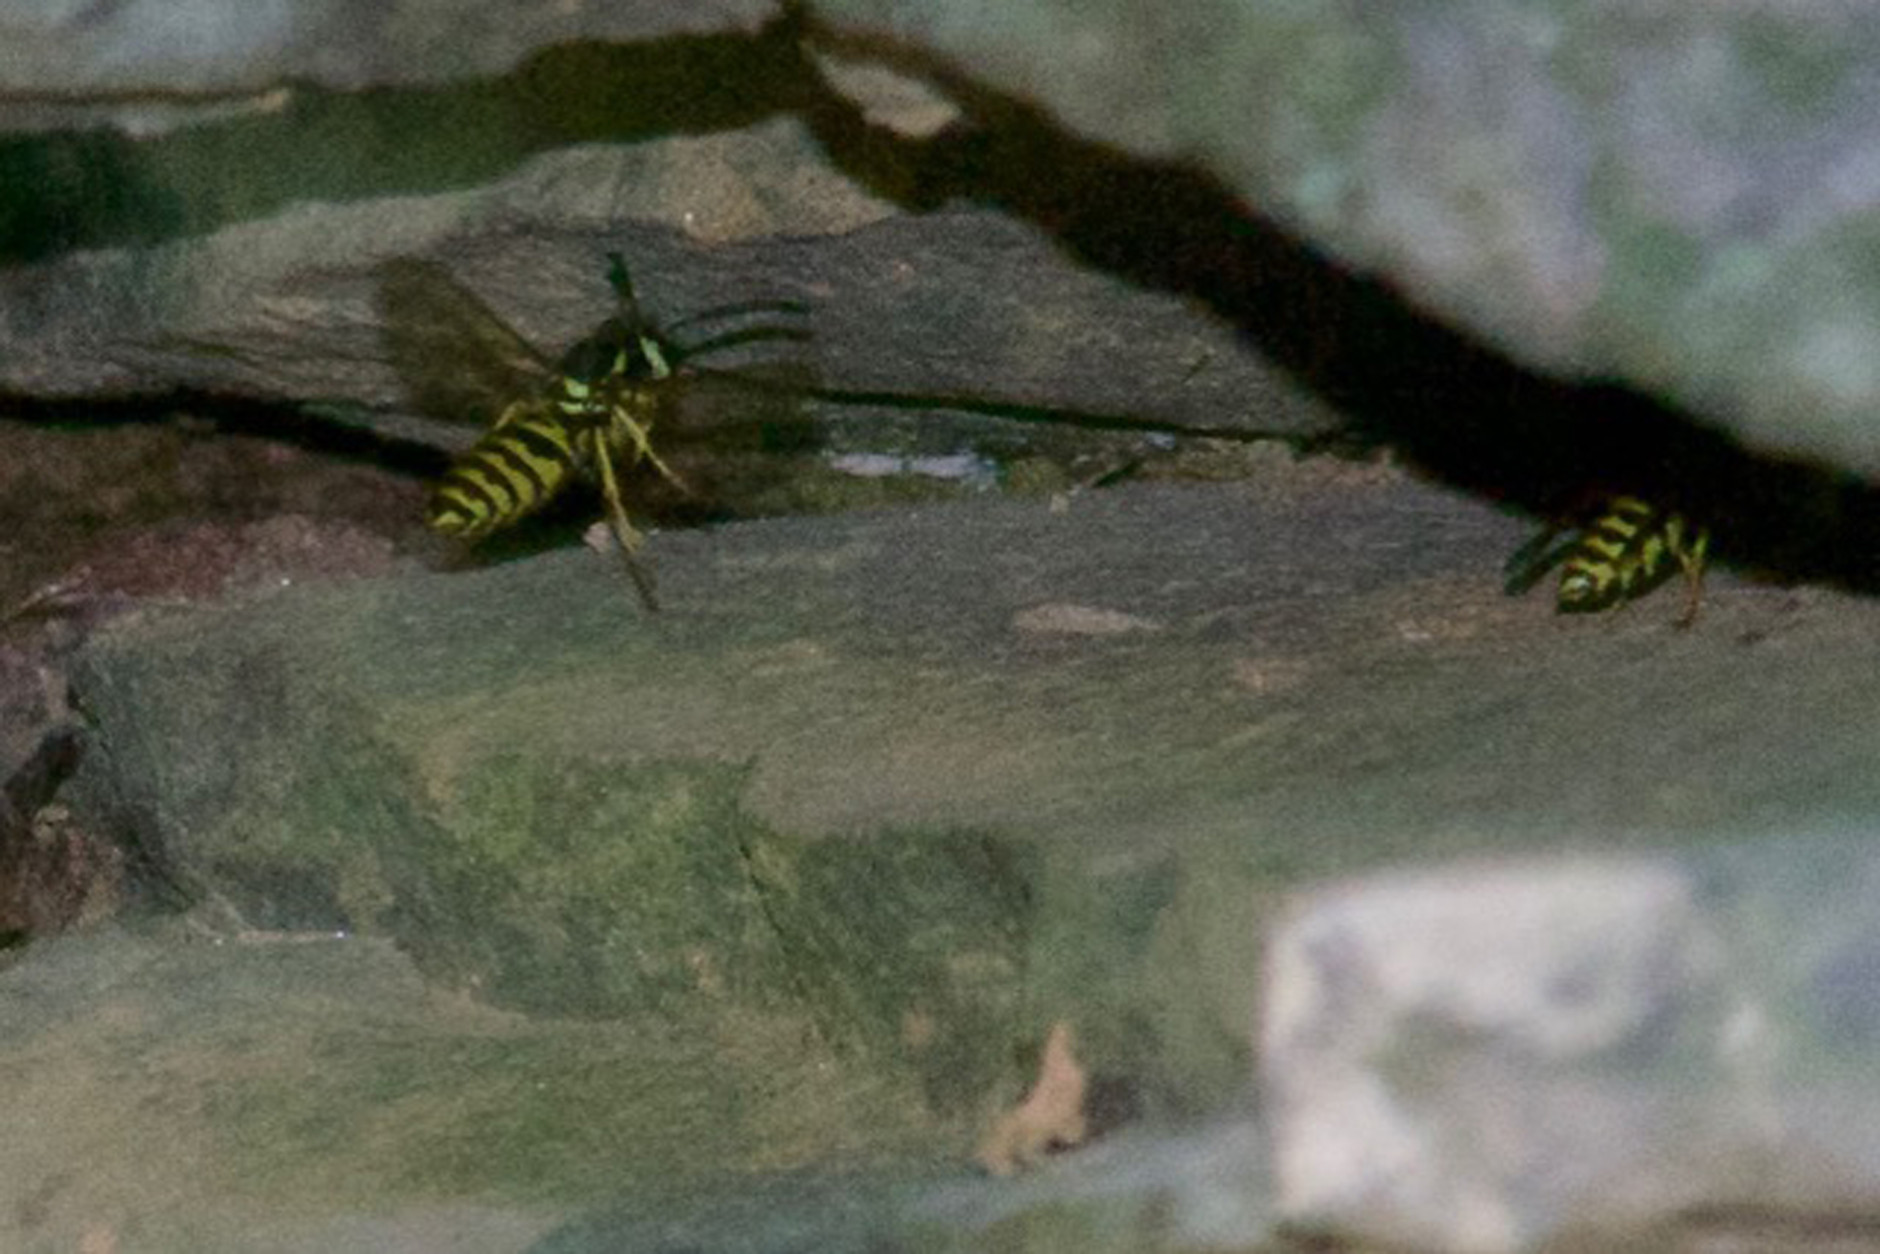 Letter writer Sean McDevitt wrote WTOP's Mike McGrath to ask about these yellow insects in his garden wall. (Courtesy Sean McDevitt)